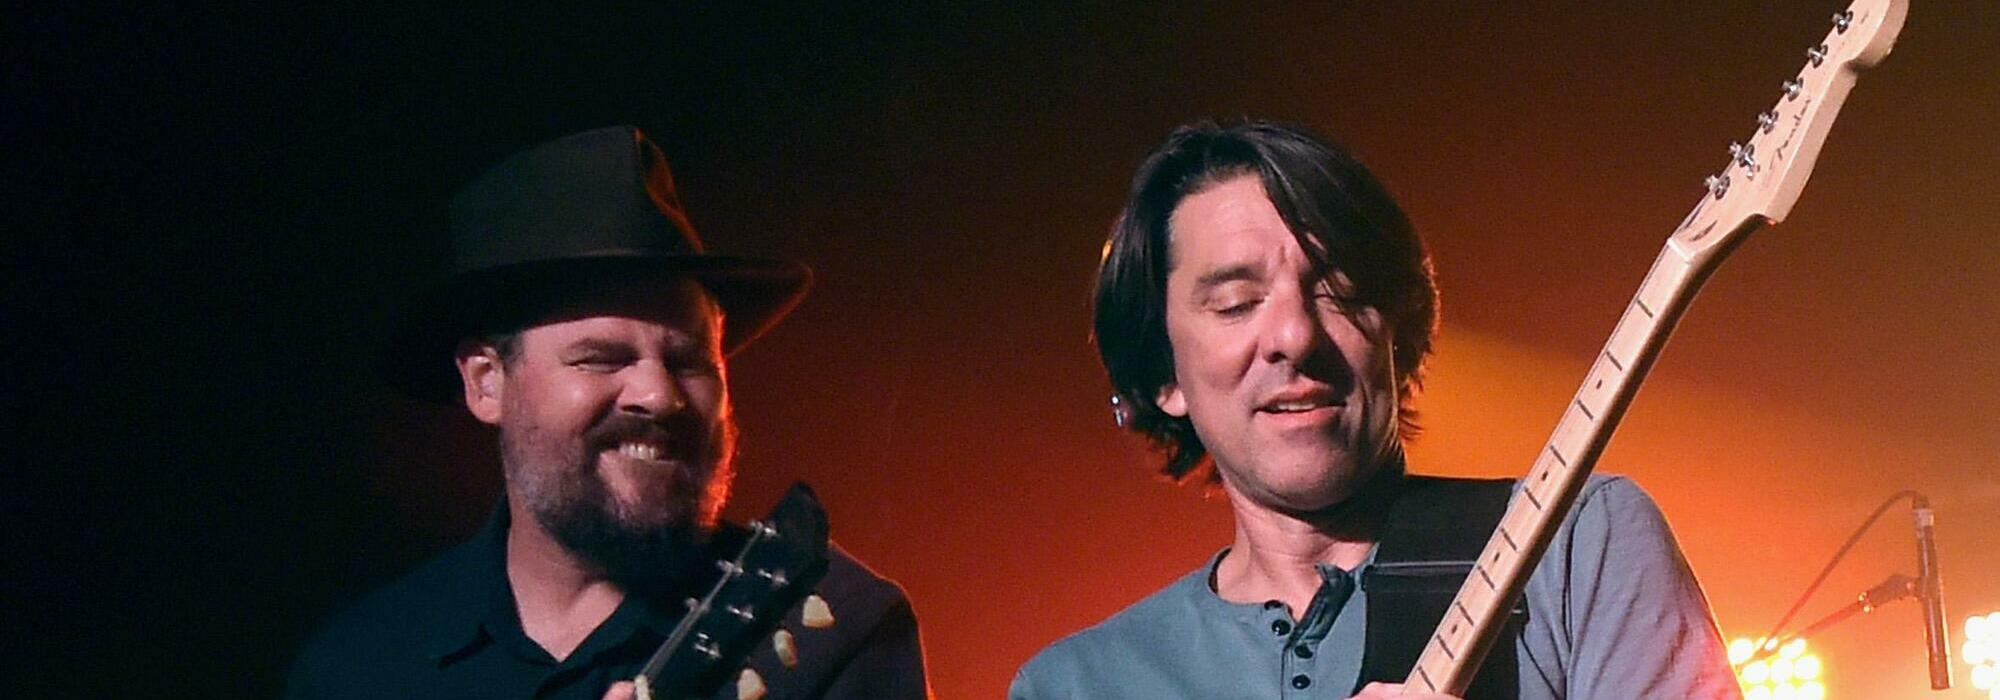 A Drive-By Truckers live event